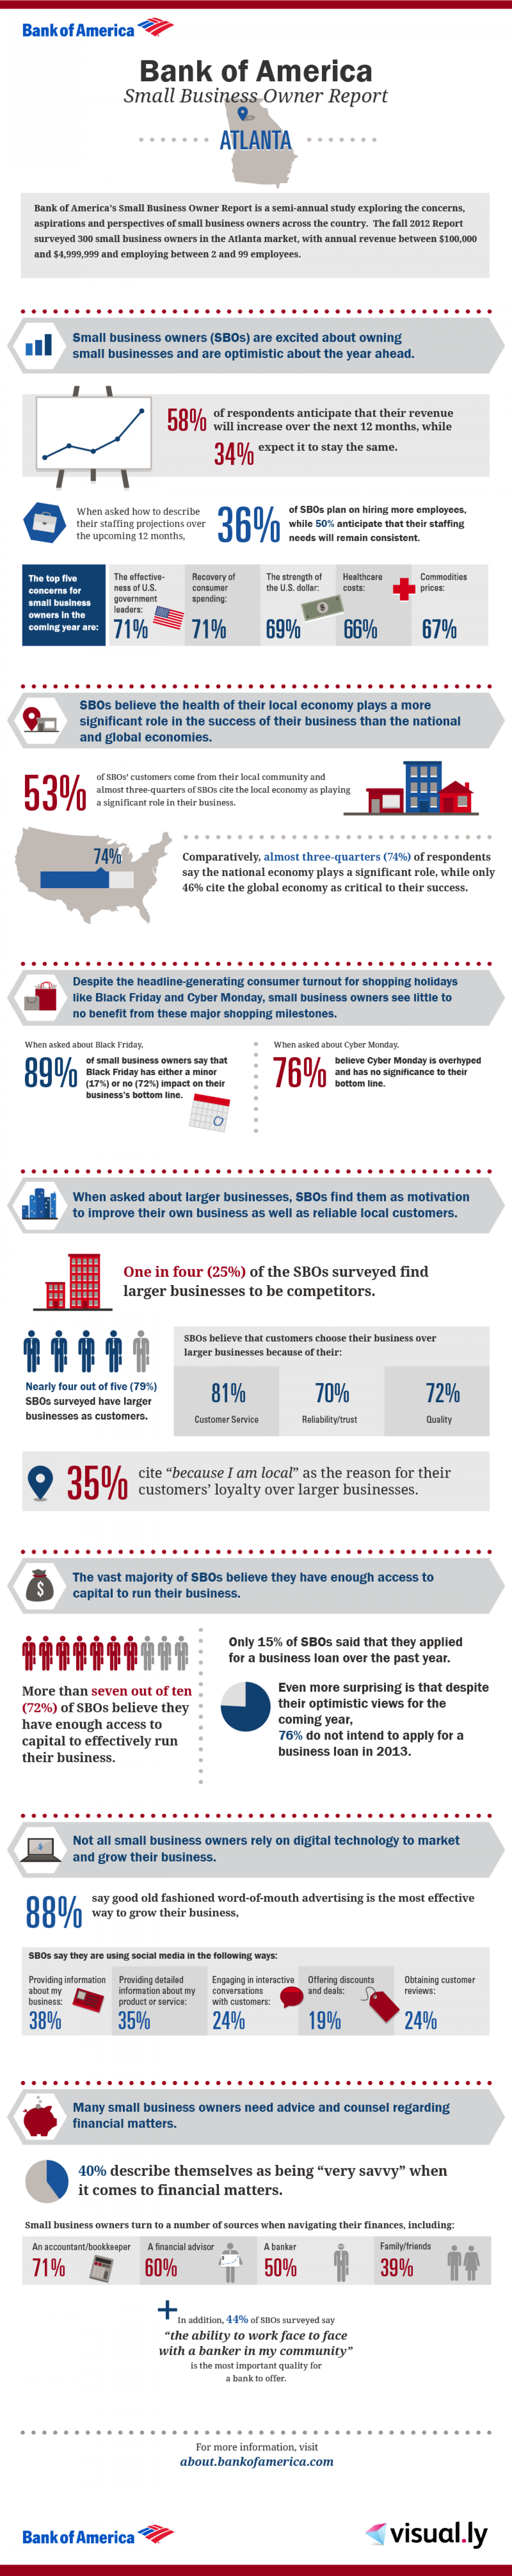 Bank of America Small Business Owner Report: Atlanta Local Breakdown Infographic